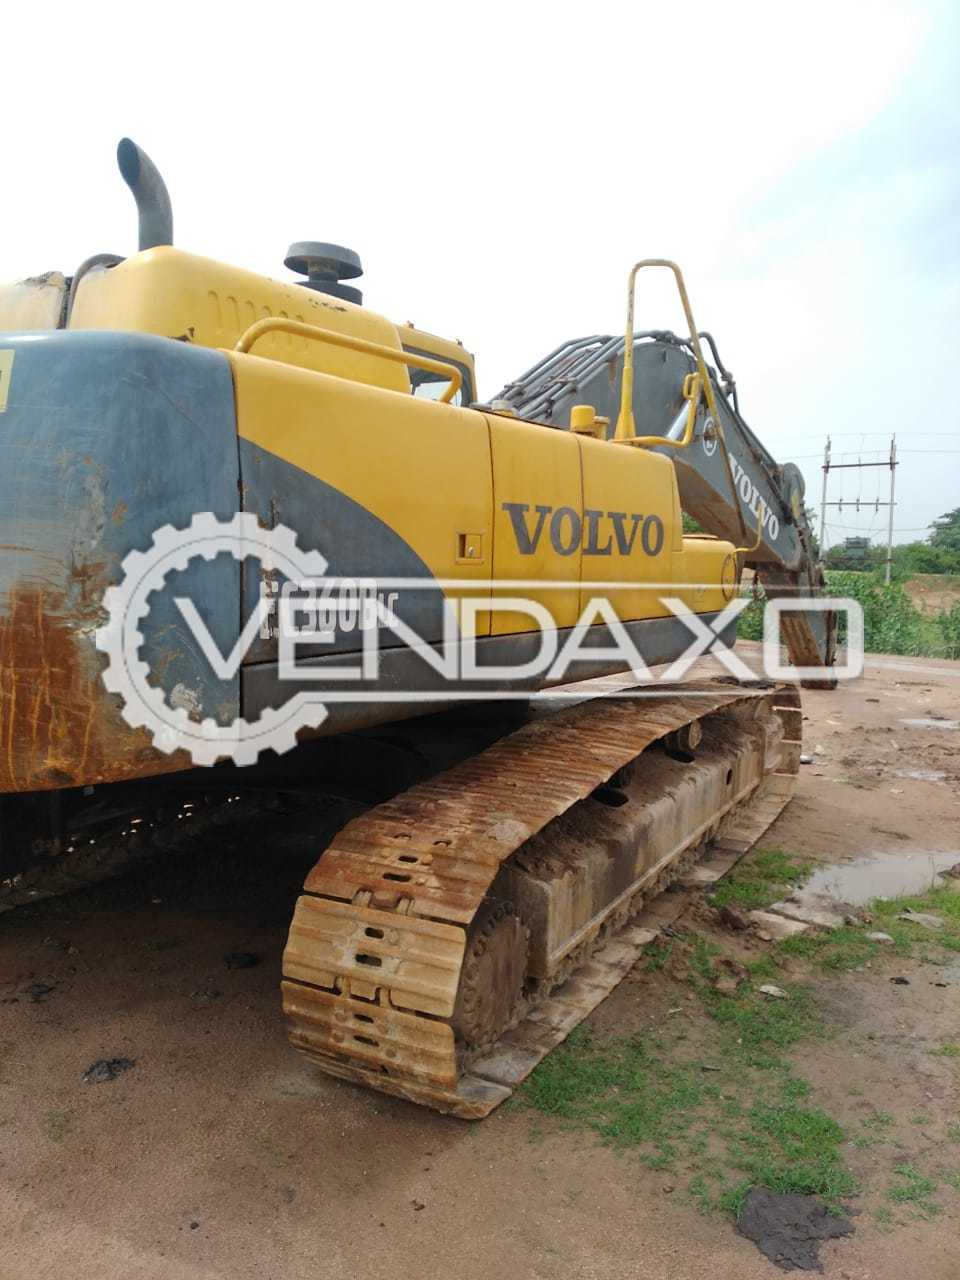 2 Set OF Volvo EC360Blc Excavator - Motor - 265 HP, 2010 & 2012 Model